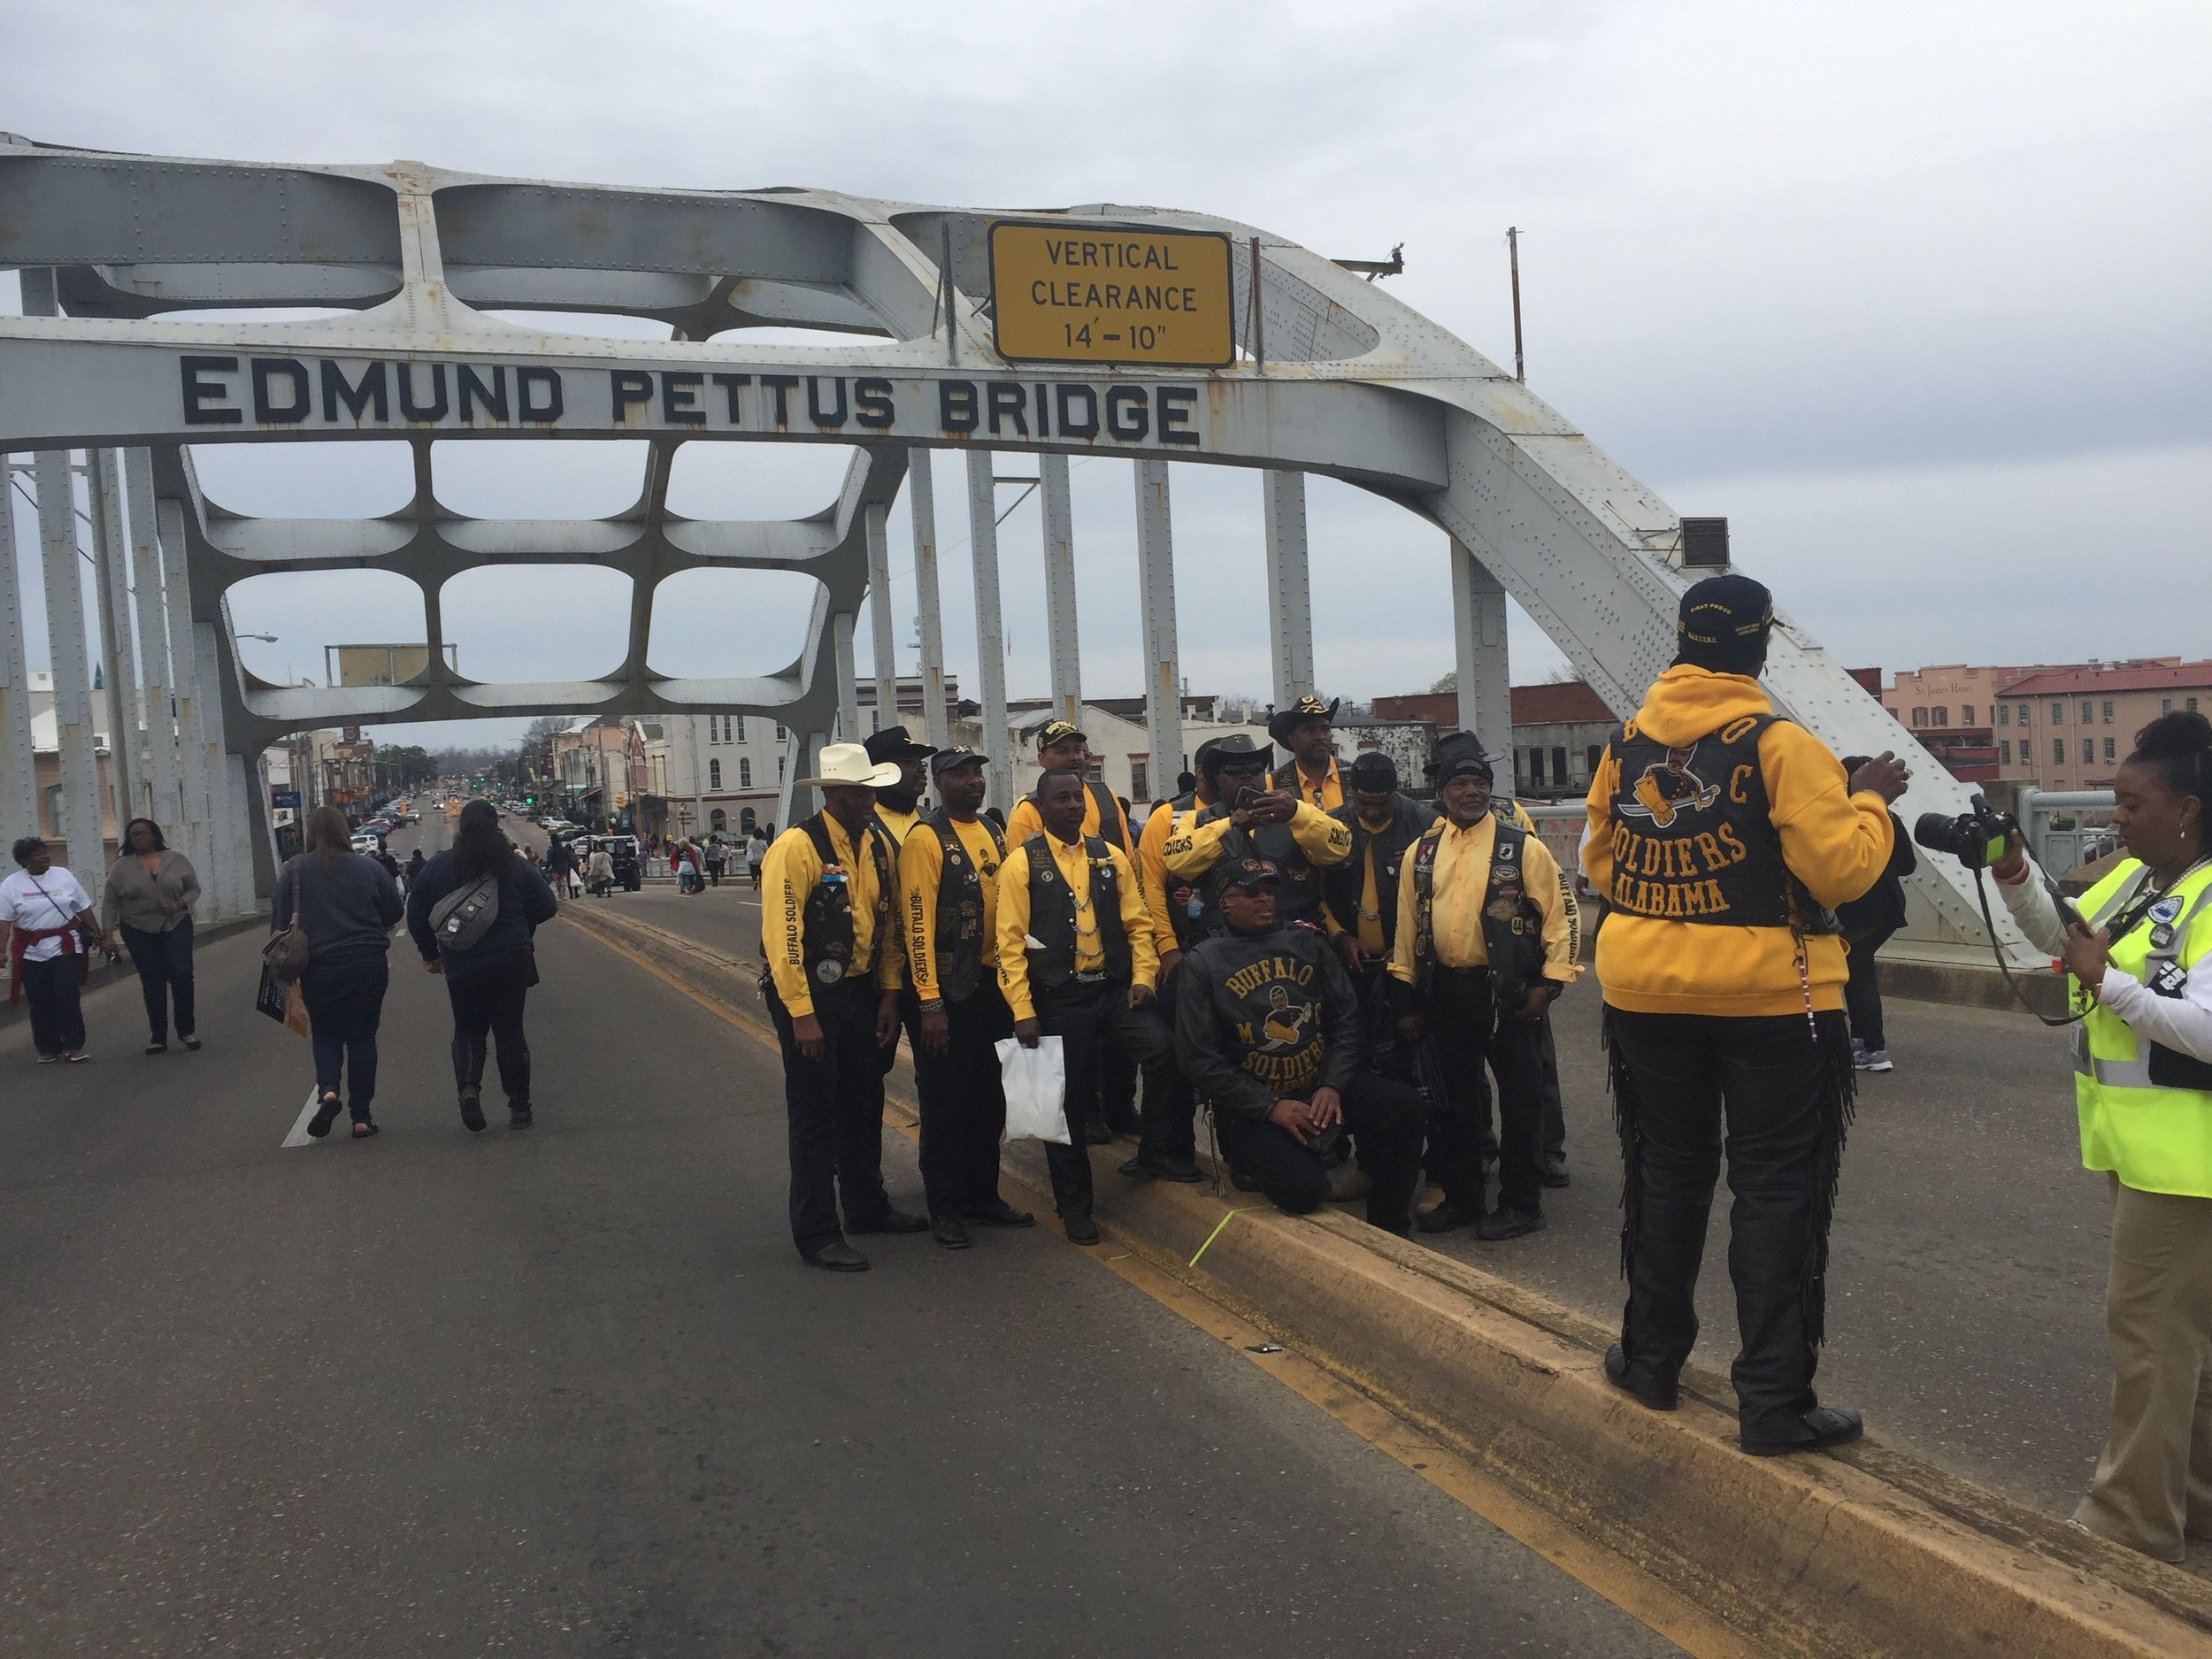 On the Edmund Pettis Bridge in Selma, Ala., where every march, thousands come out to reenact the historic bridge-crossing that began the 1965 Selma-to-Montgomery March for Voting Rights.